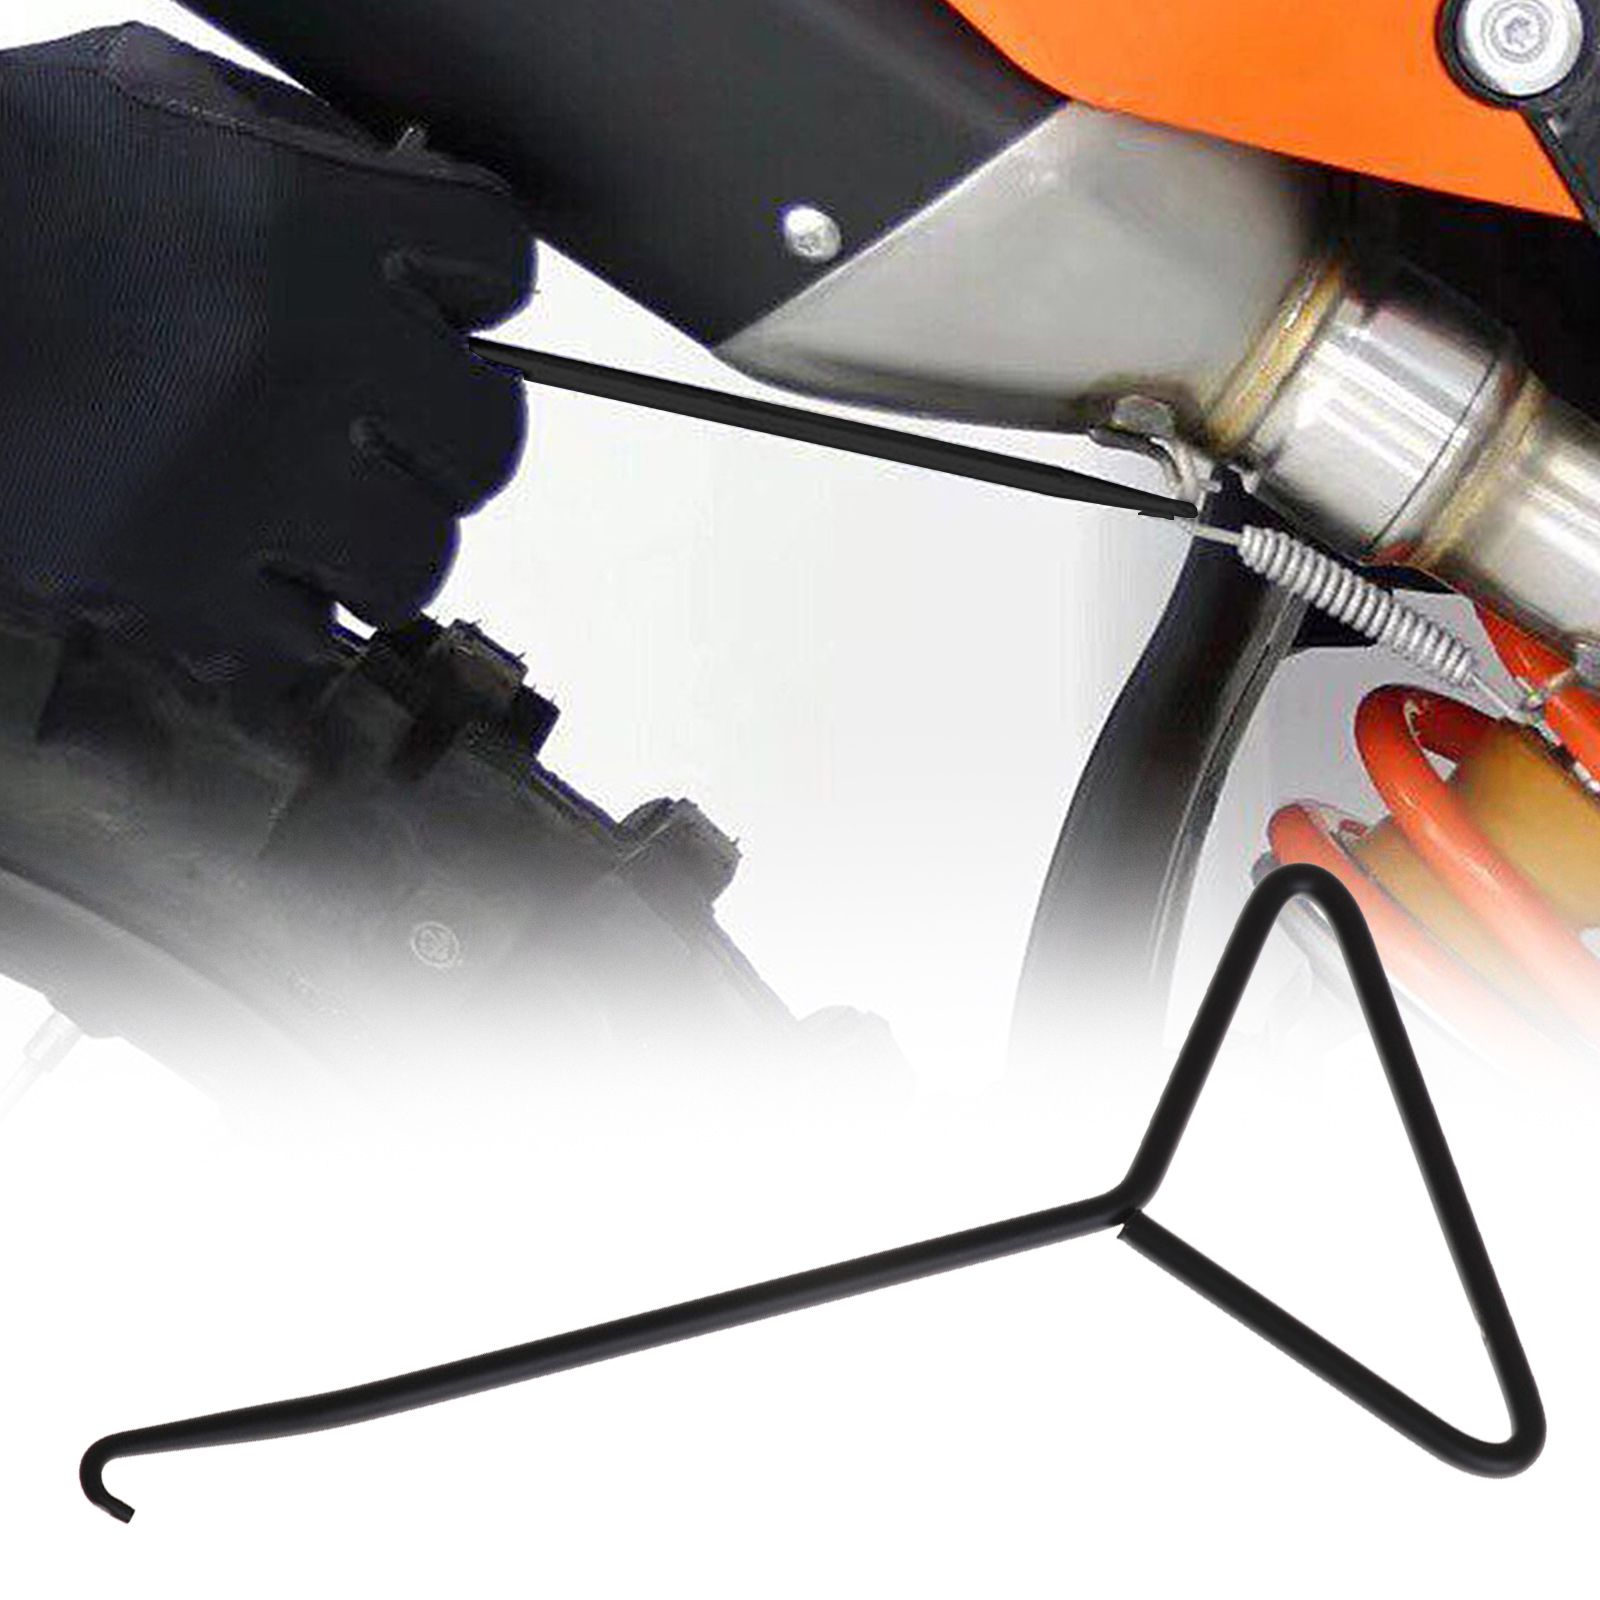 1PC Stainless Steel Motorcycle Exhaust Stand Spring Hook Puller Tool  Dirt Scooters Car Wash Maintenance Car Accessories